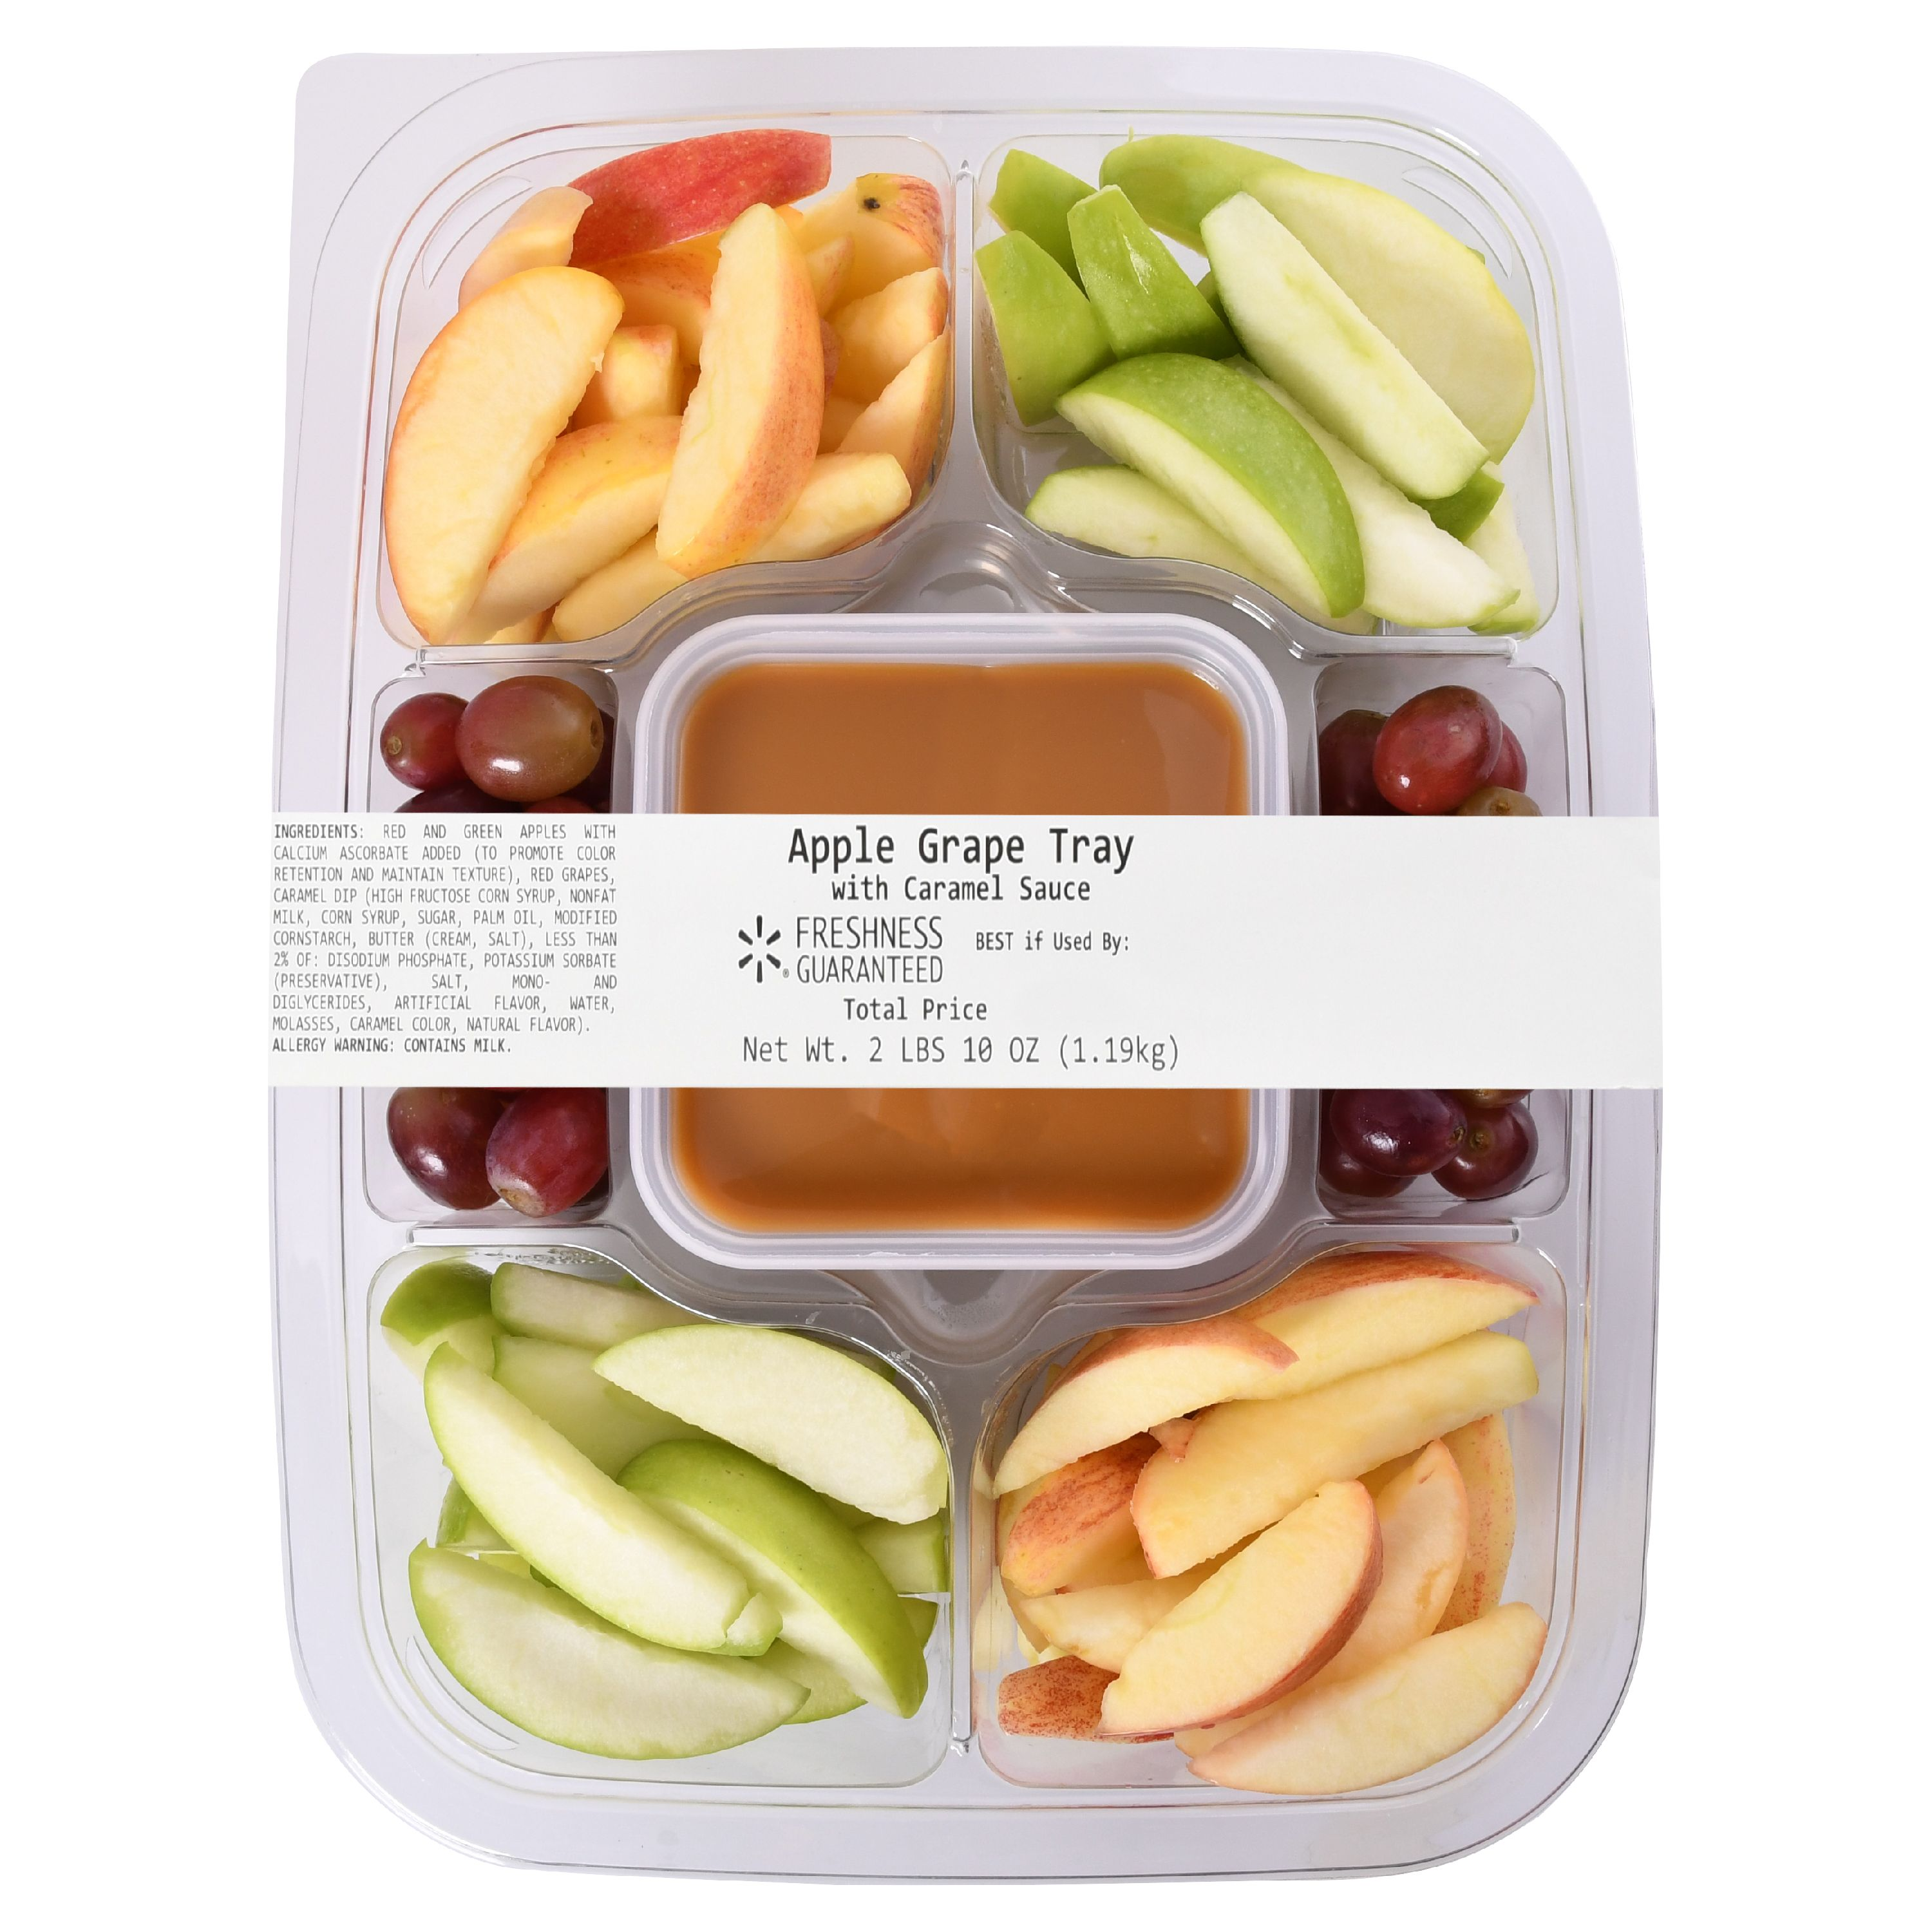 Freshness Guaranteed Apple and Grape Tray with Caramel Sauce, 42 oz